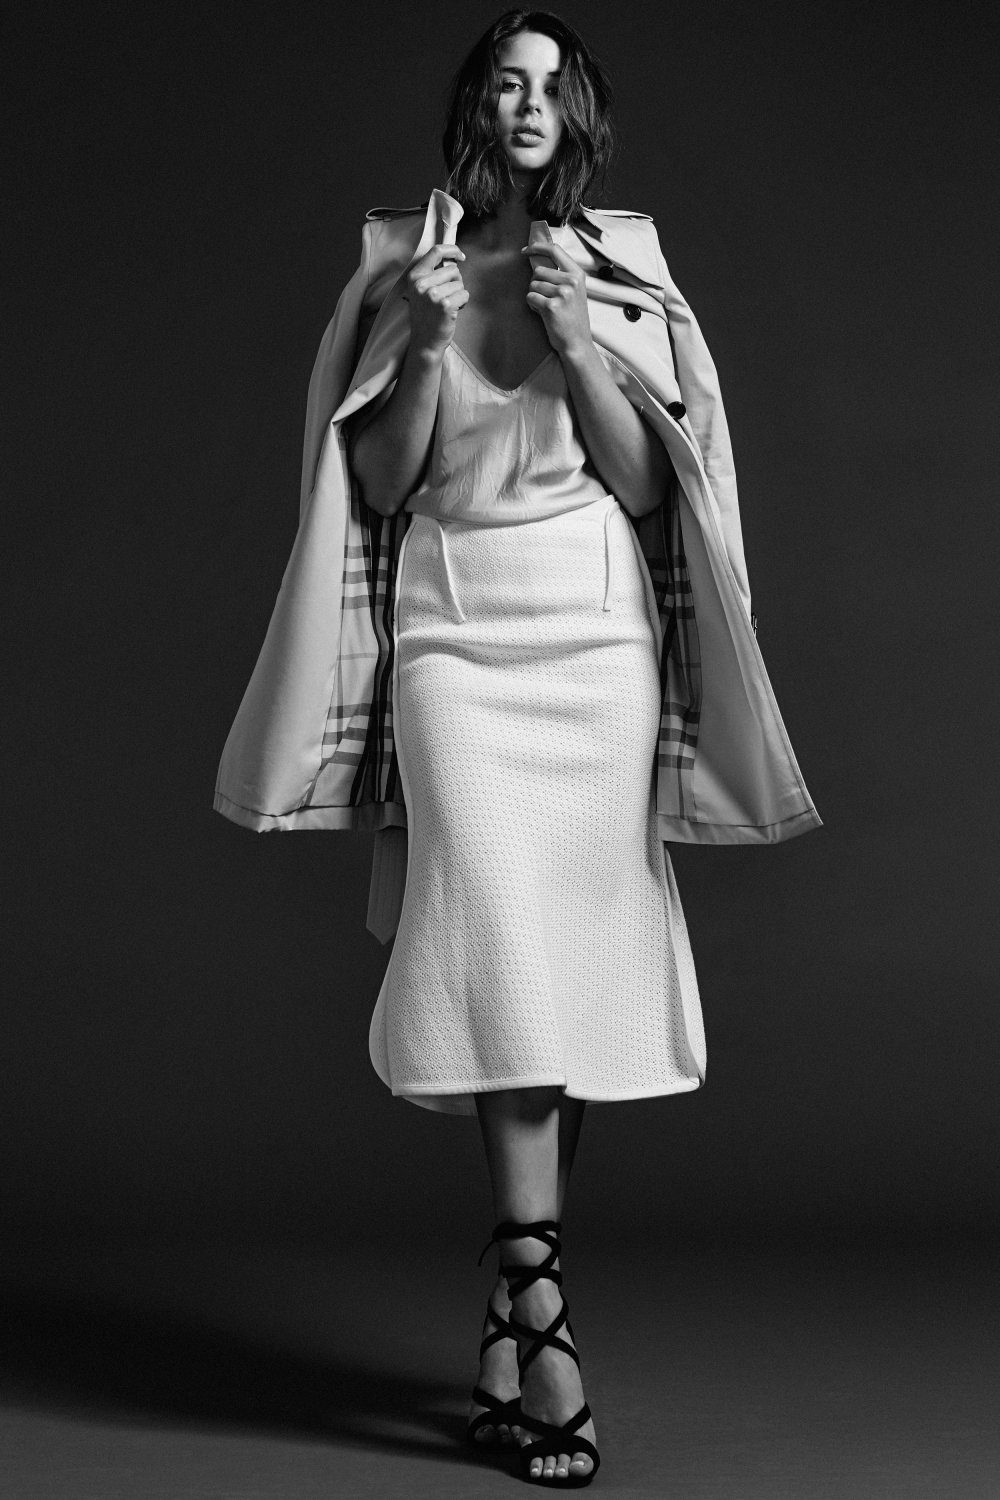 harper-and-harley_sara-donaldson_burberry_jake-terrey_skirt_bw